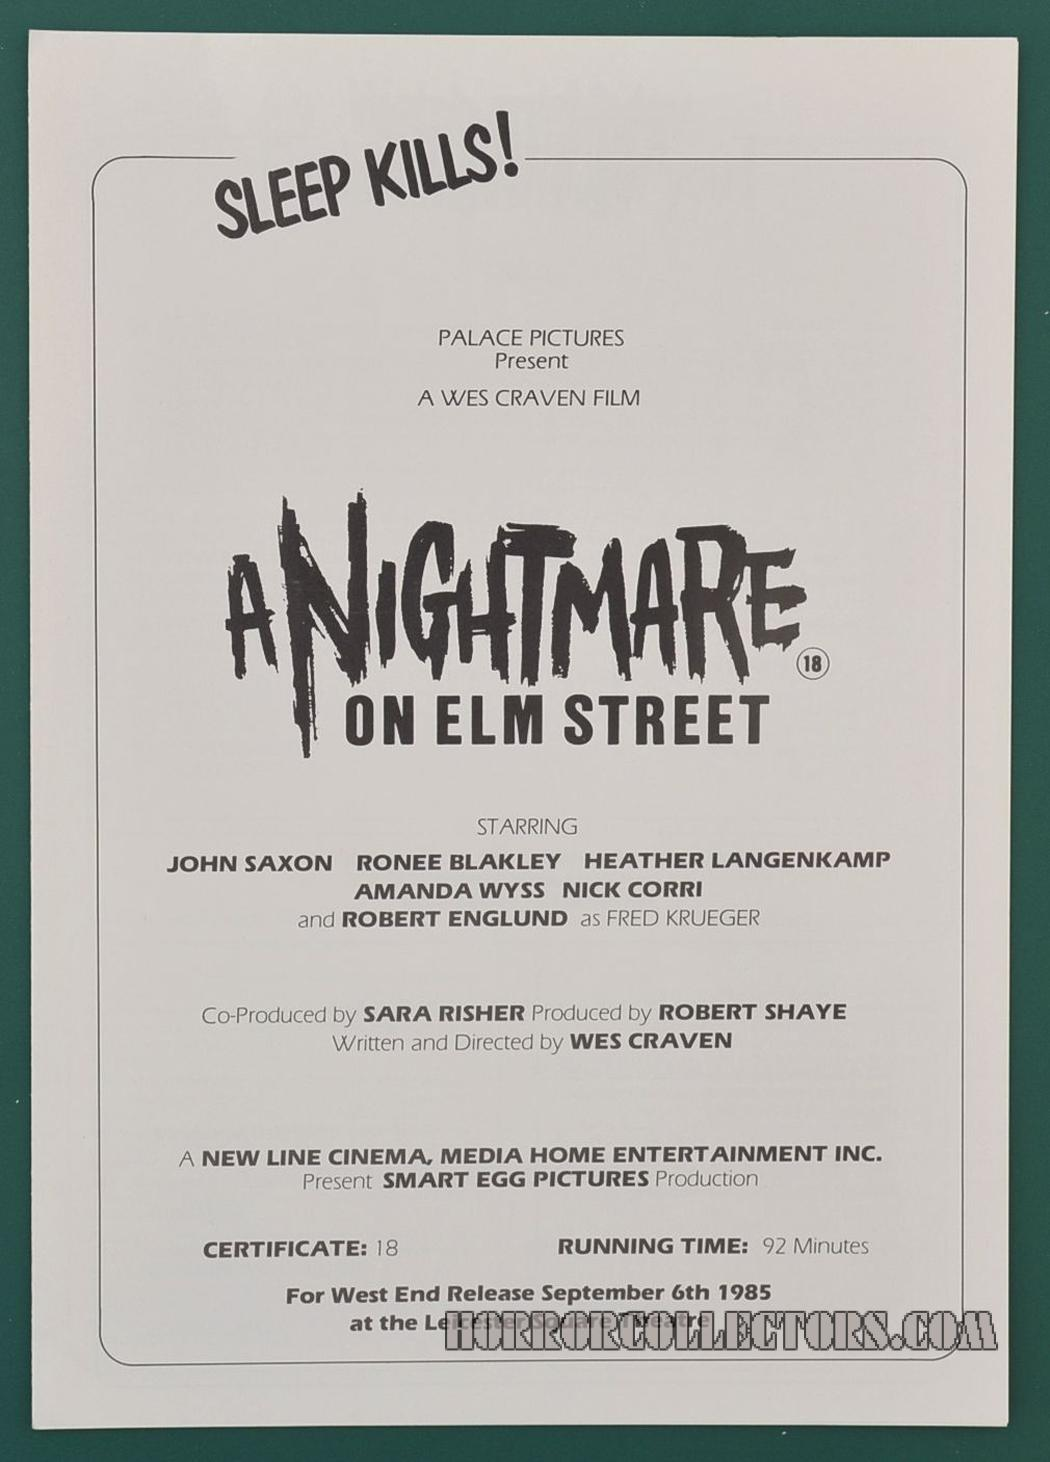 A Nightmare on Elm Street UK Palace Pictures press sheet synopsis